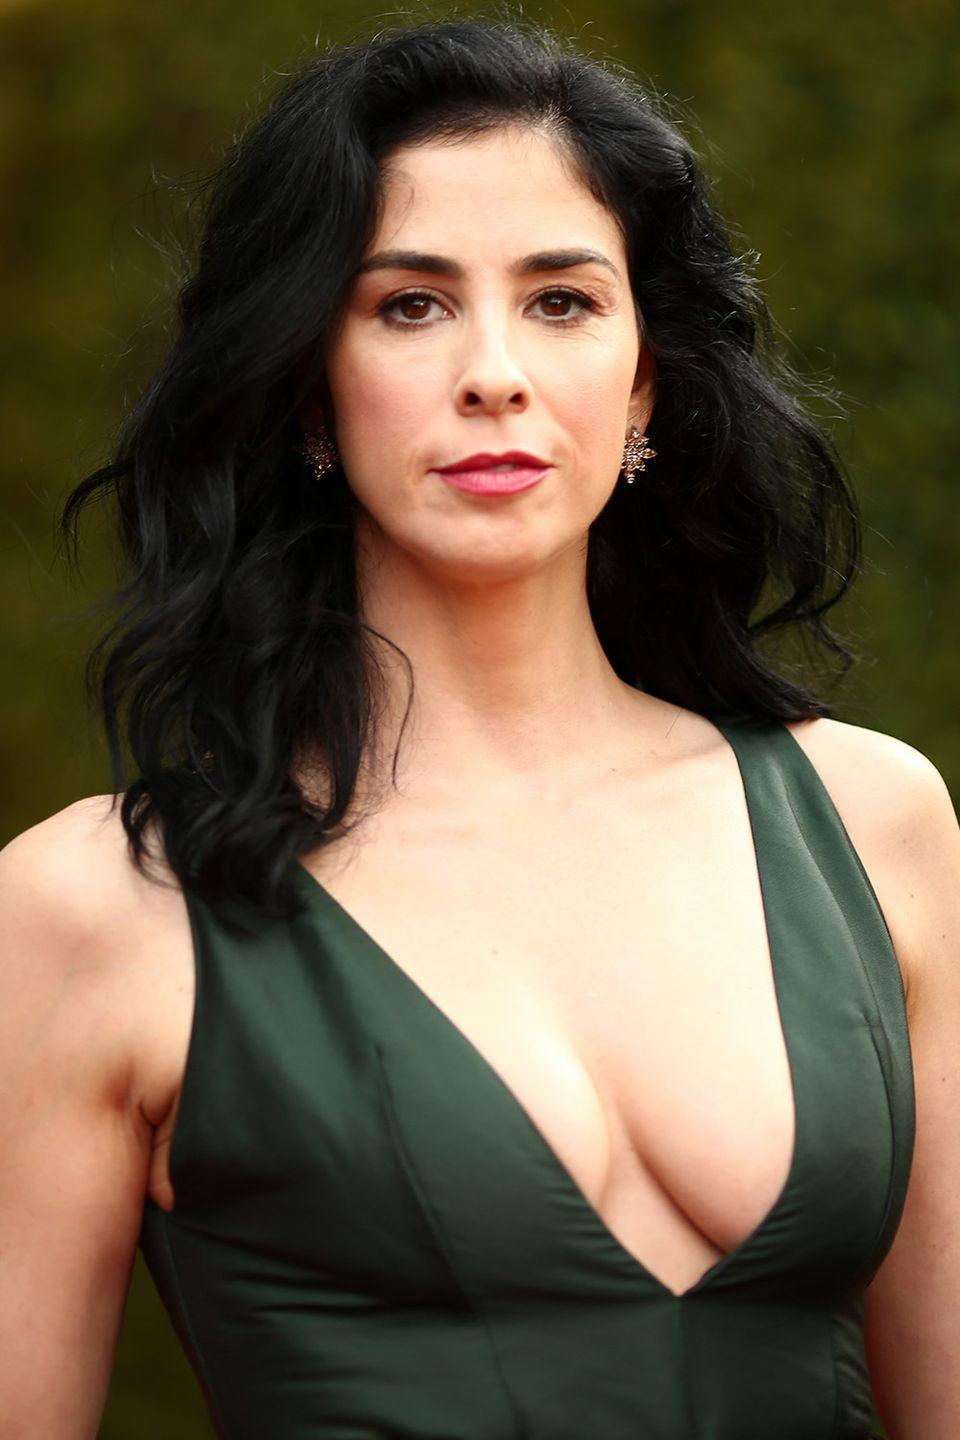 """<p>The comedian and actress expressed her dislike for alcohol in a <a href=""""http://www.dailymail.co.uk/tvshowbiz/article-2734355/Sarah-Silverman-reveals-liquid-vaporiser-dashing-barefoot-collect-Emmy-gushing-My-Mr-Fancypants-Sheen.html"""" rel=""""nofollow noopener"""" target=""""_blank"""" data-ylk=""""slk:red carpet interview"""" class=""""link rapid-noclick-resp"""">red carpet interview</a> at the 2014 Emmys where she tells E!'s Giuliana Rancic: 'I don't drink because it gives me a stomach ache [...] I try all the time, it looks good and I feel like I would have fun being drunk, but I have a Jewish stomach.'</p>"""